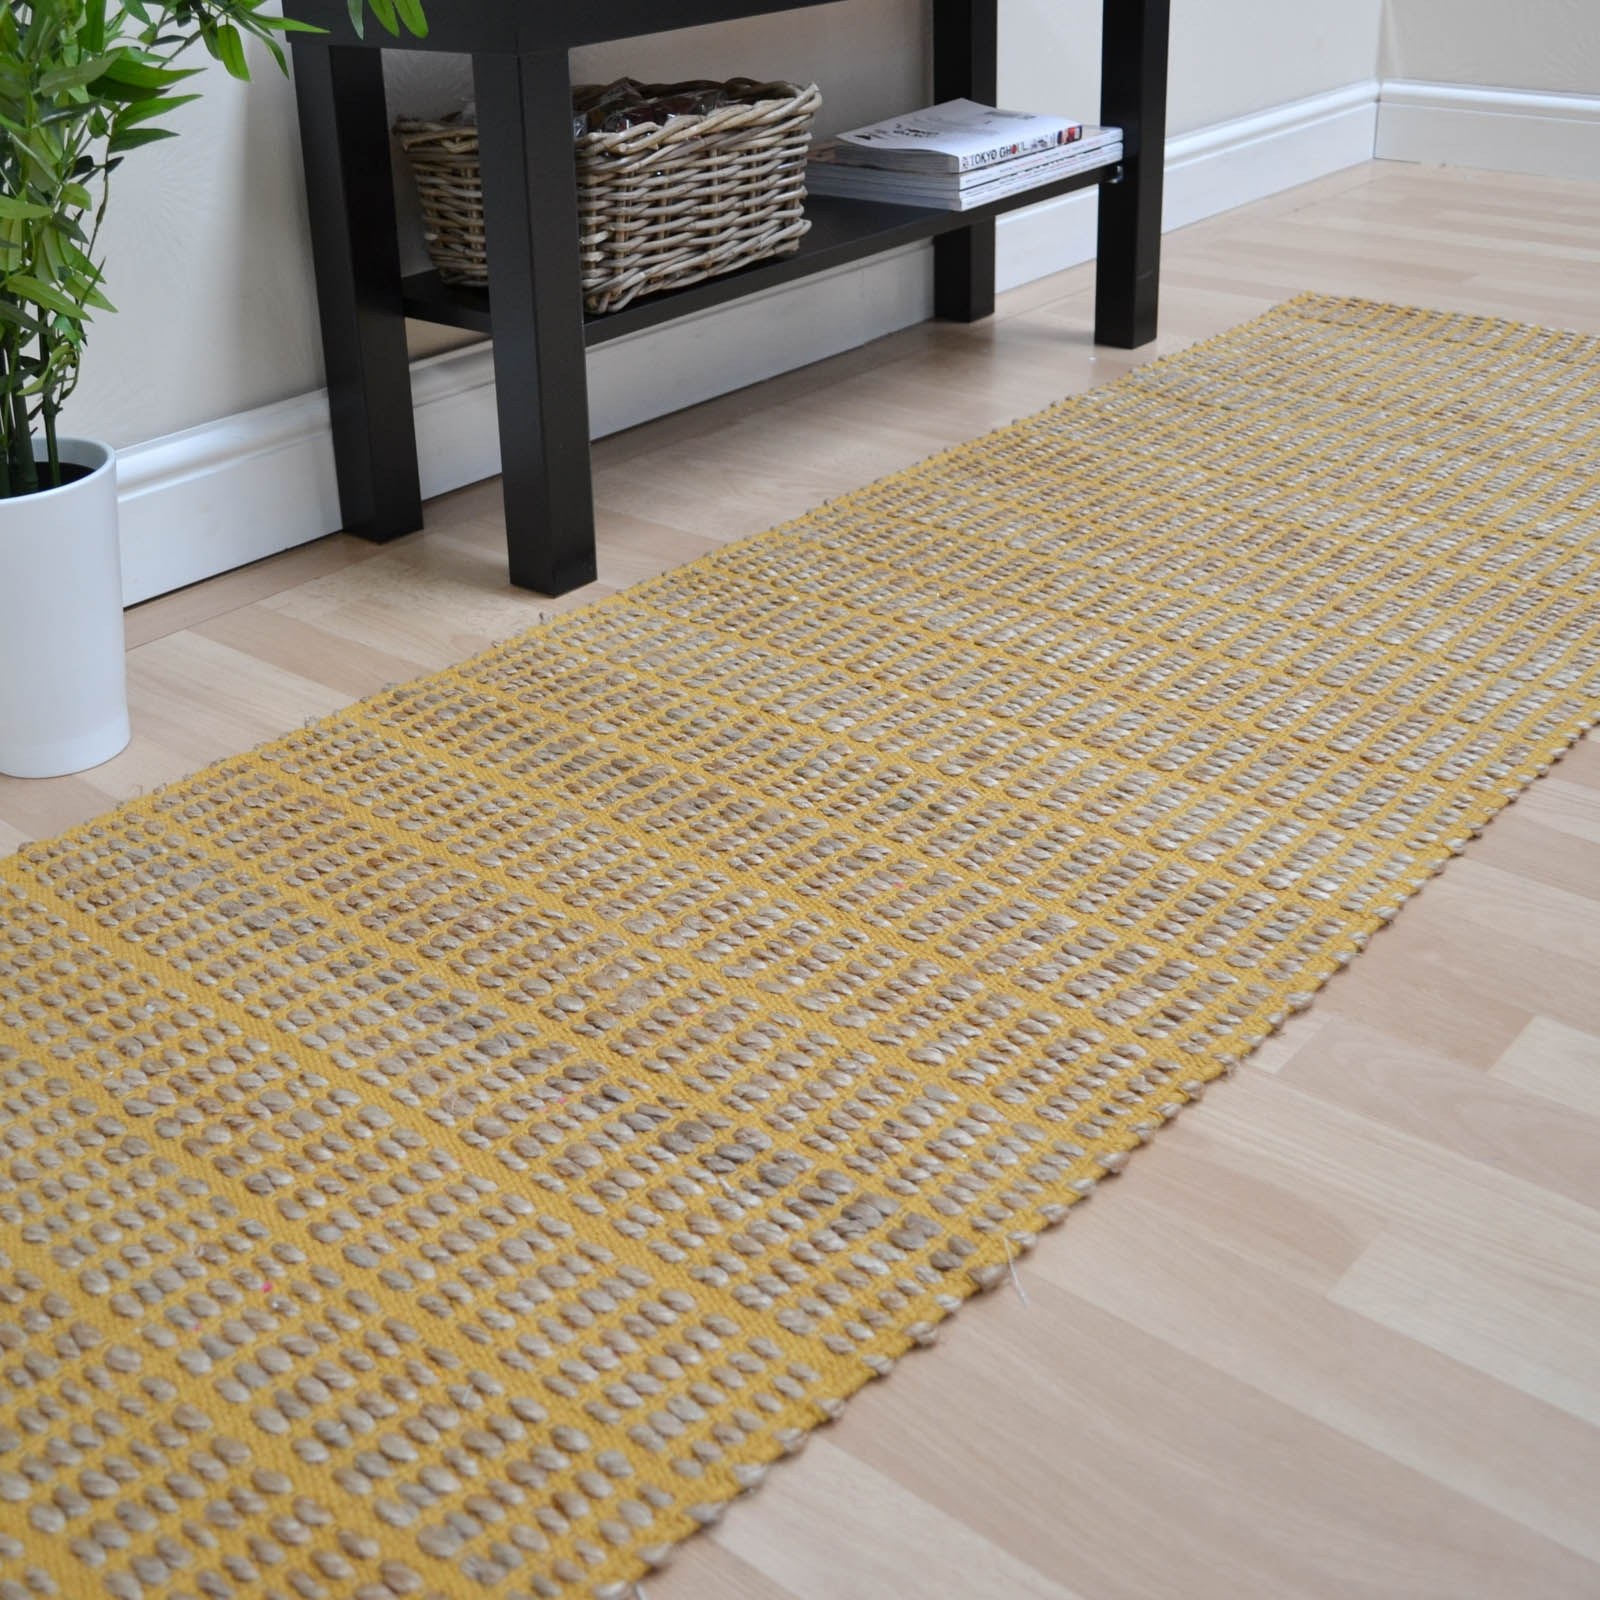 Hall Rugs Uk Roselawnlutheran With Regard To Hallway Runners Rugs (#10 of 20)